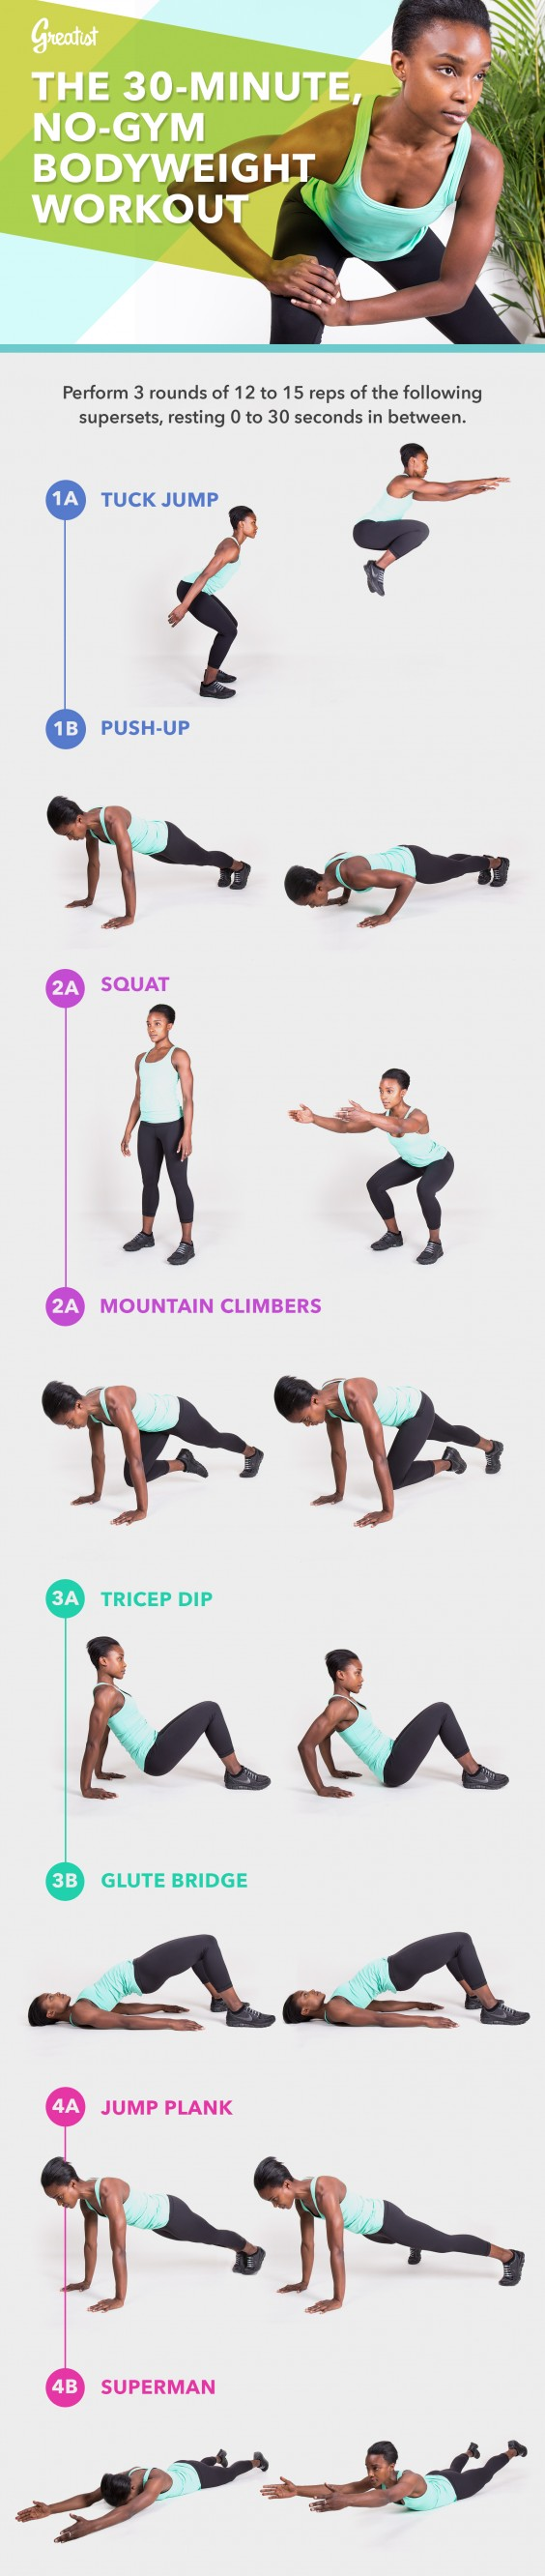 30 Minute Home Bodyweight Workout Graphic